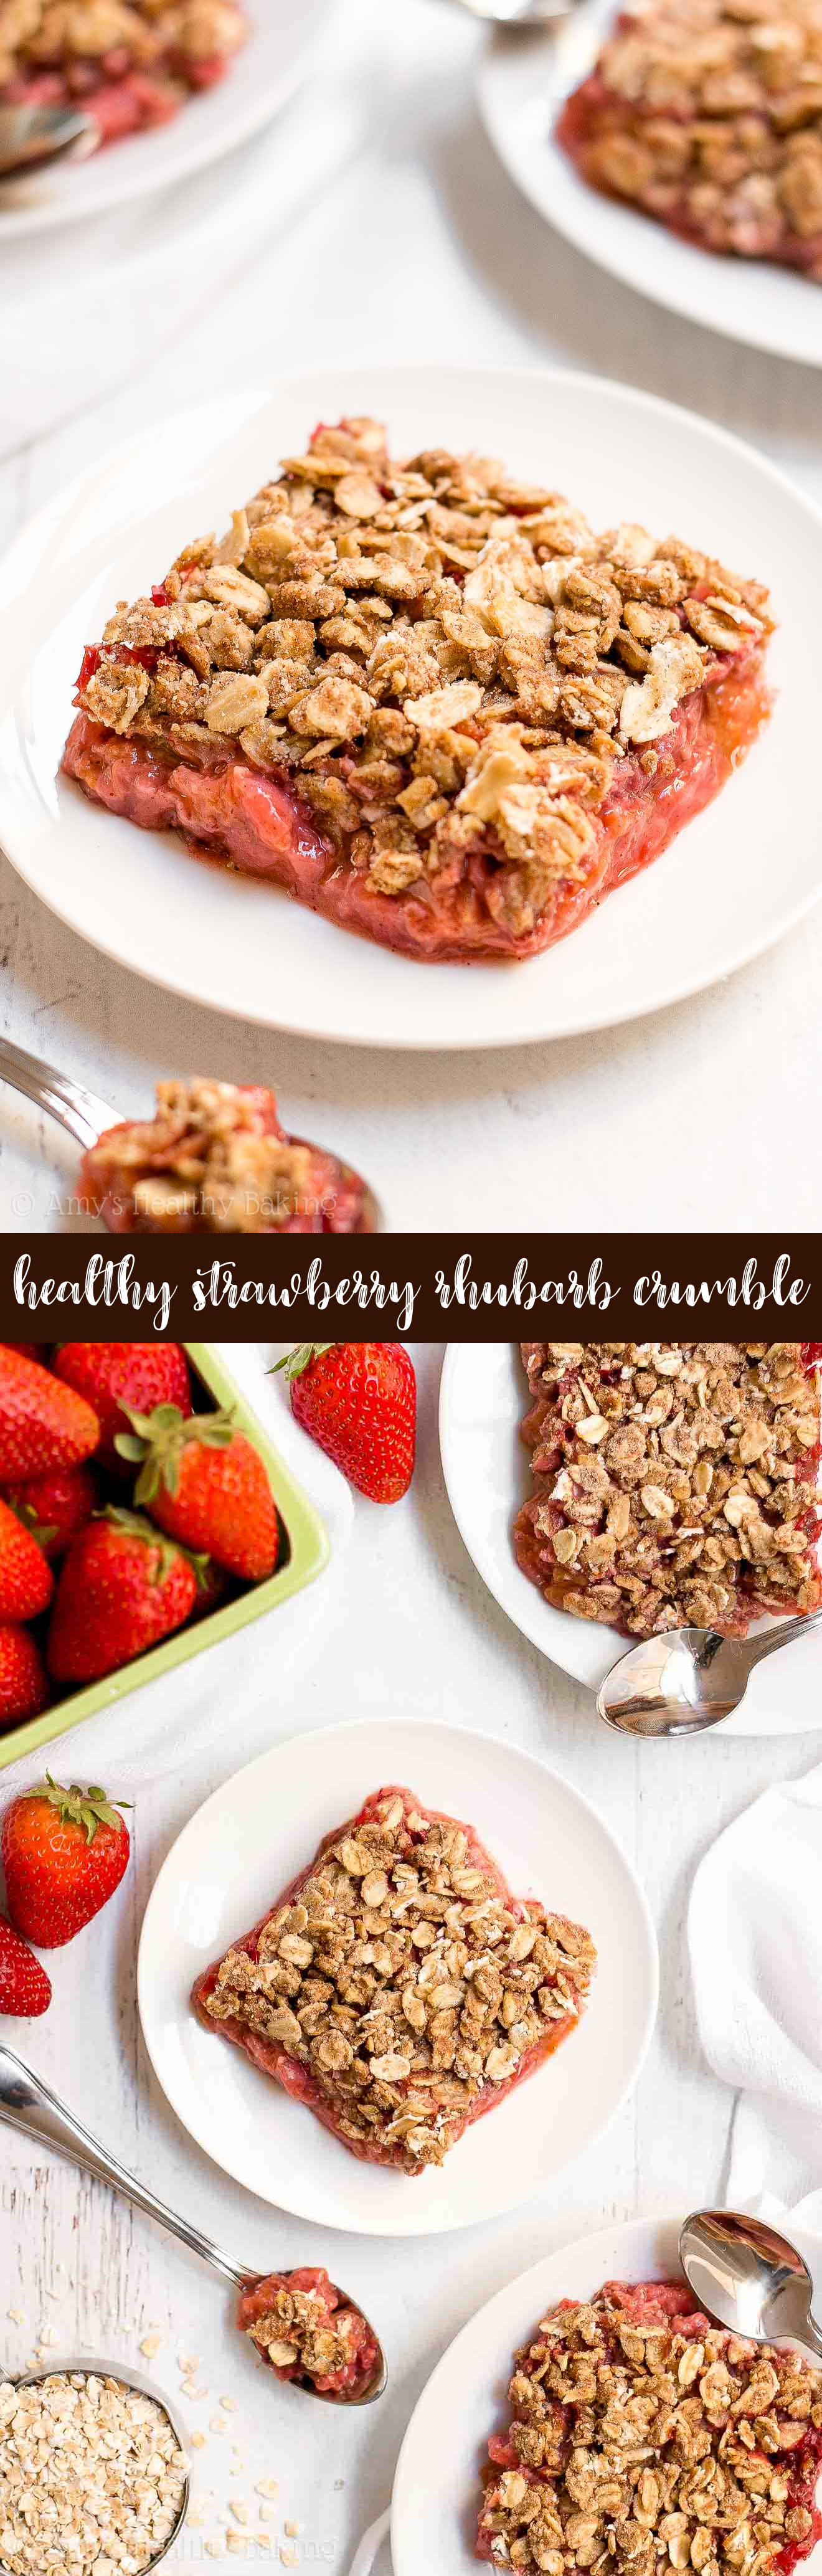 Best Healthy Strawberry Rhubarb Crumble